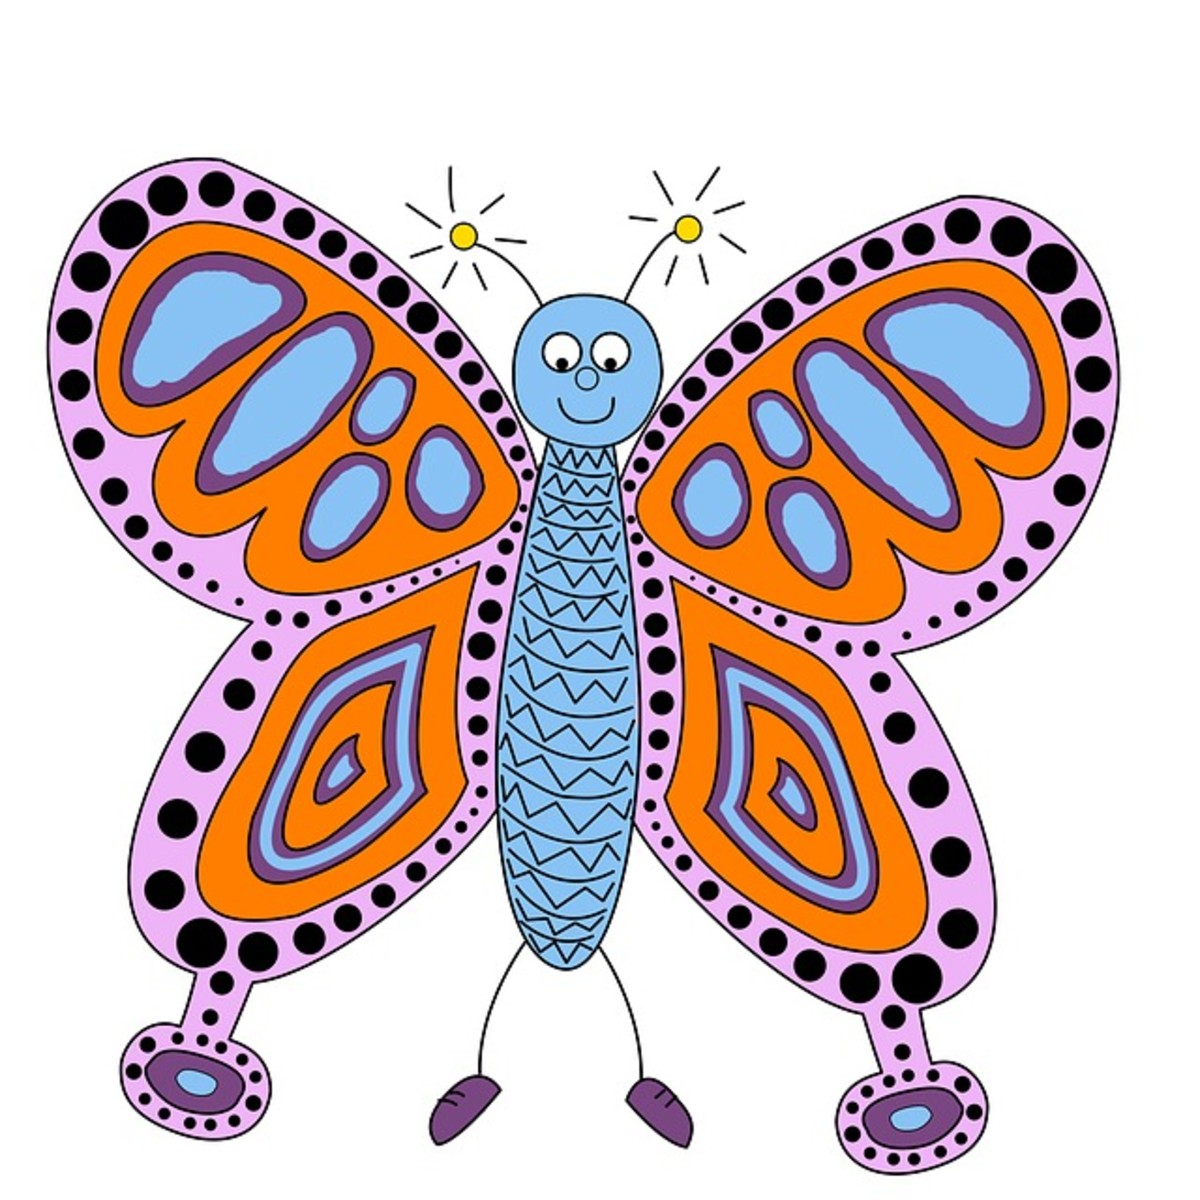 Cartoon Butterfly with Sparkler Antennae